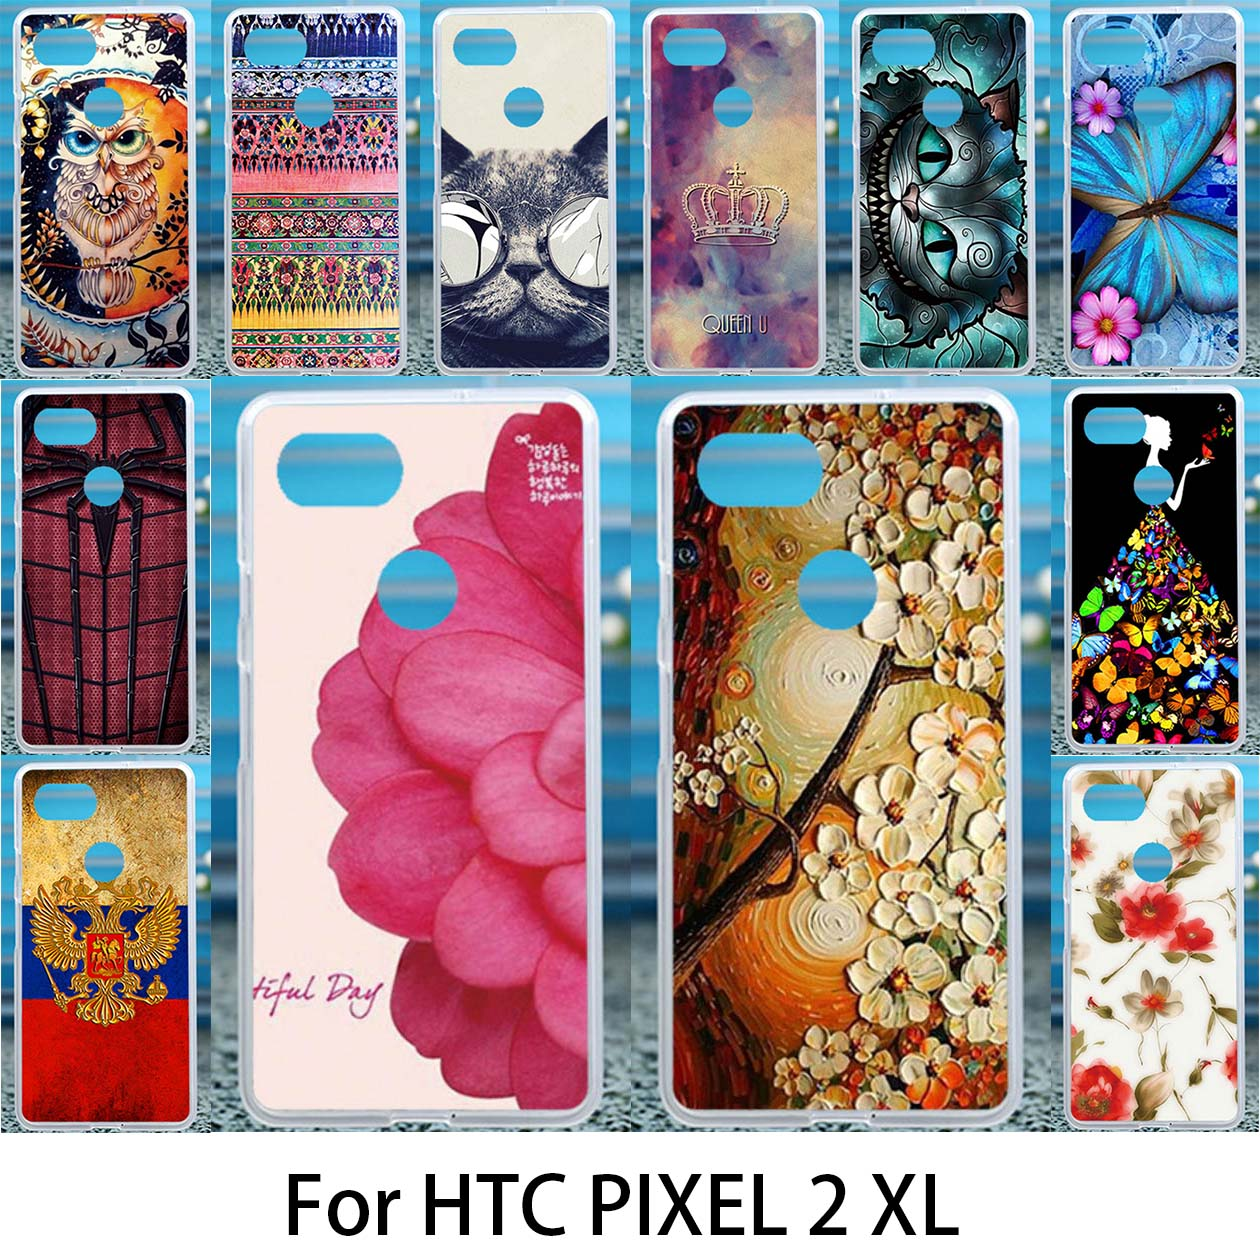 Case Soft For HTC Pixel2 XL Cases Google Pixel 2 XL Silicon Cover DIY Painted Anti-Knock Covers